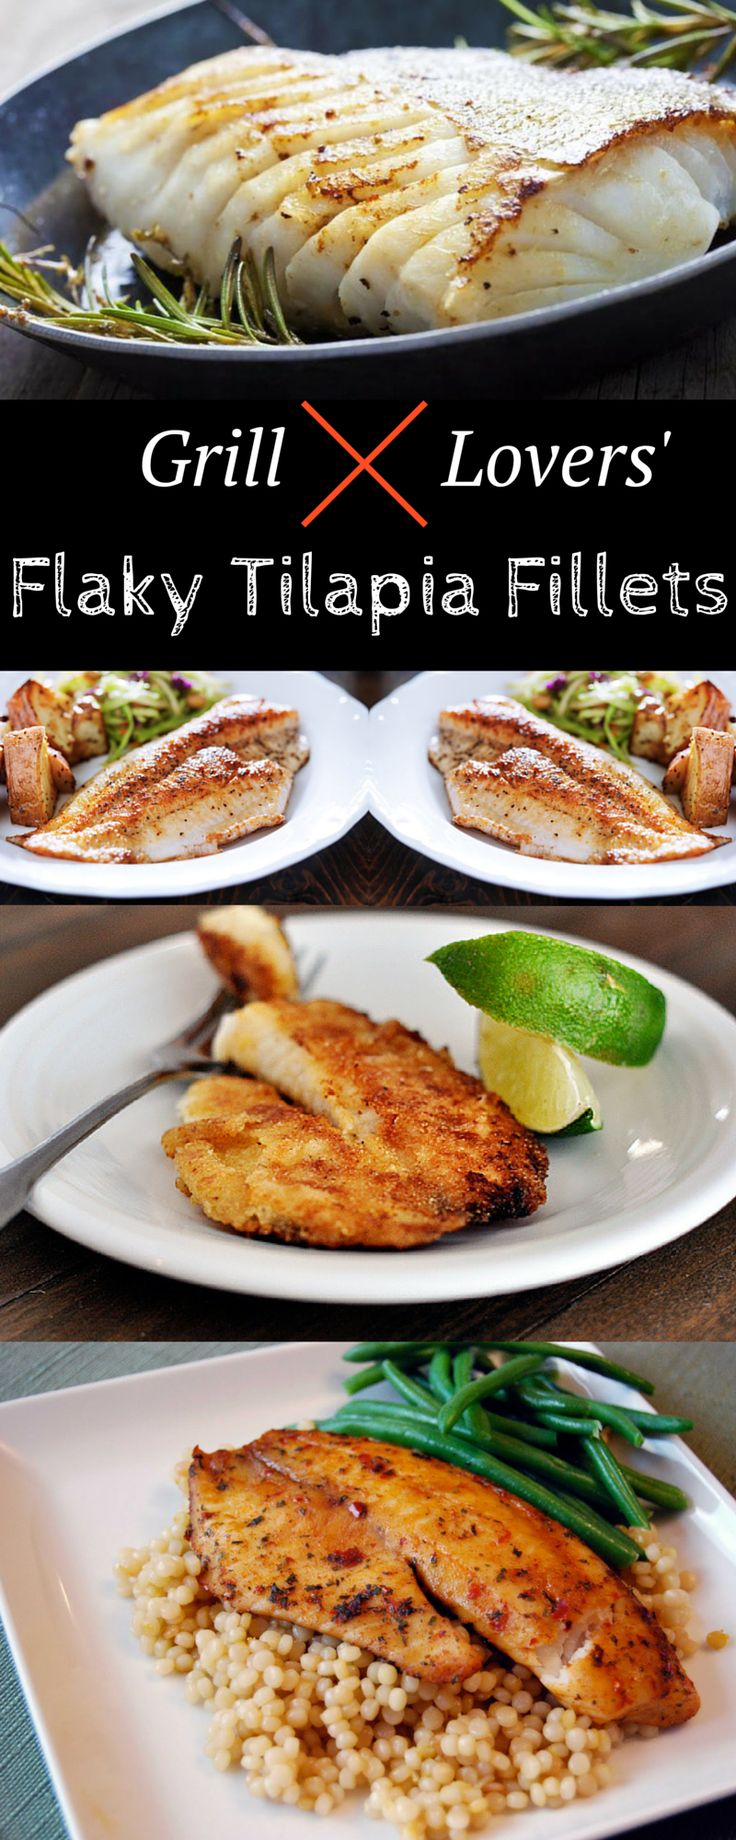 Grill Lovers' Flaky Tilapia Fillets Recipe   #recipes #foodporn #foodie